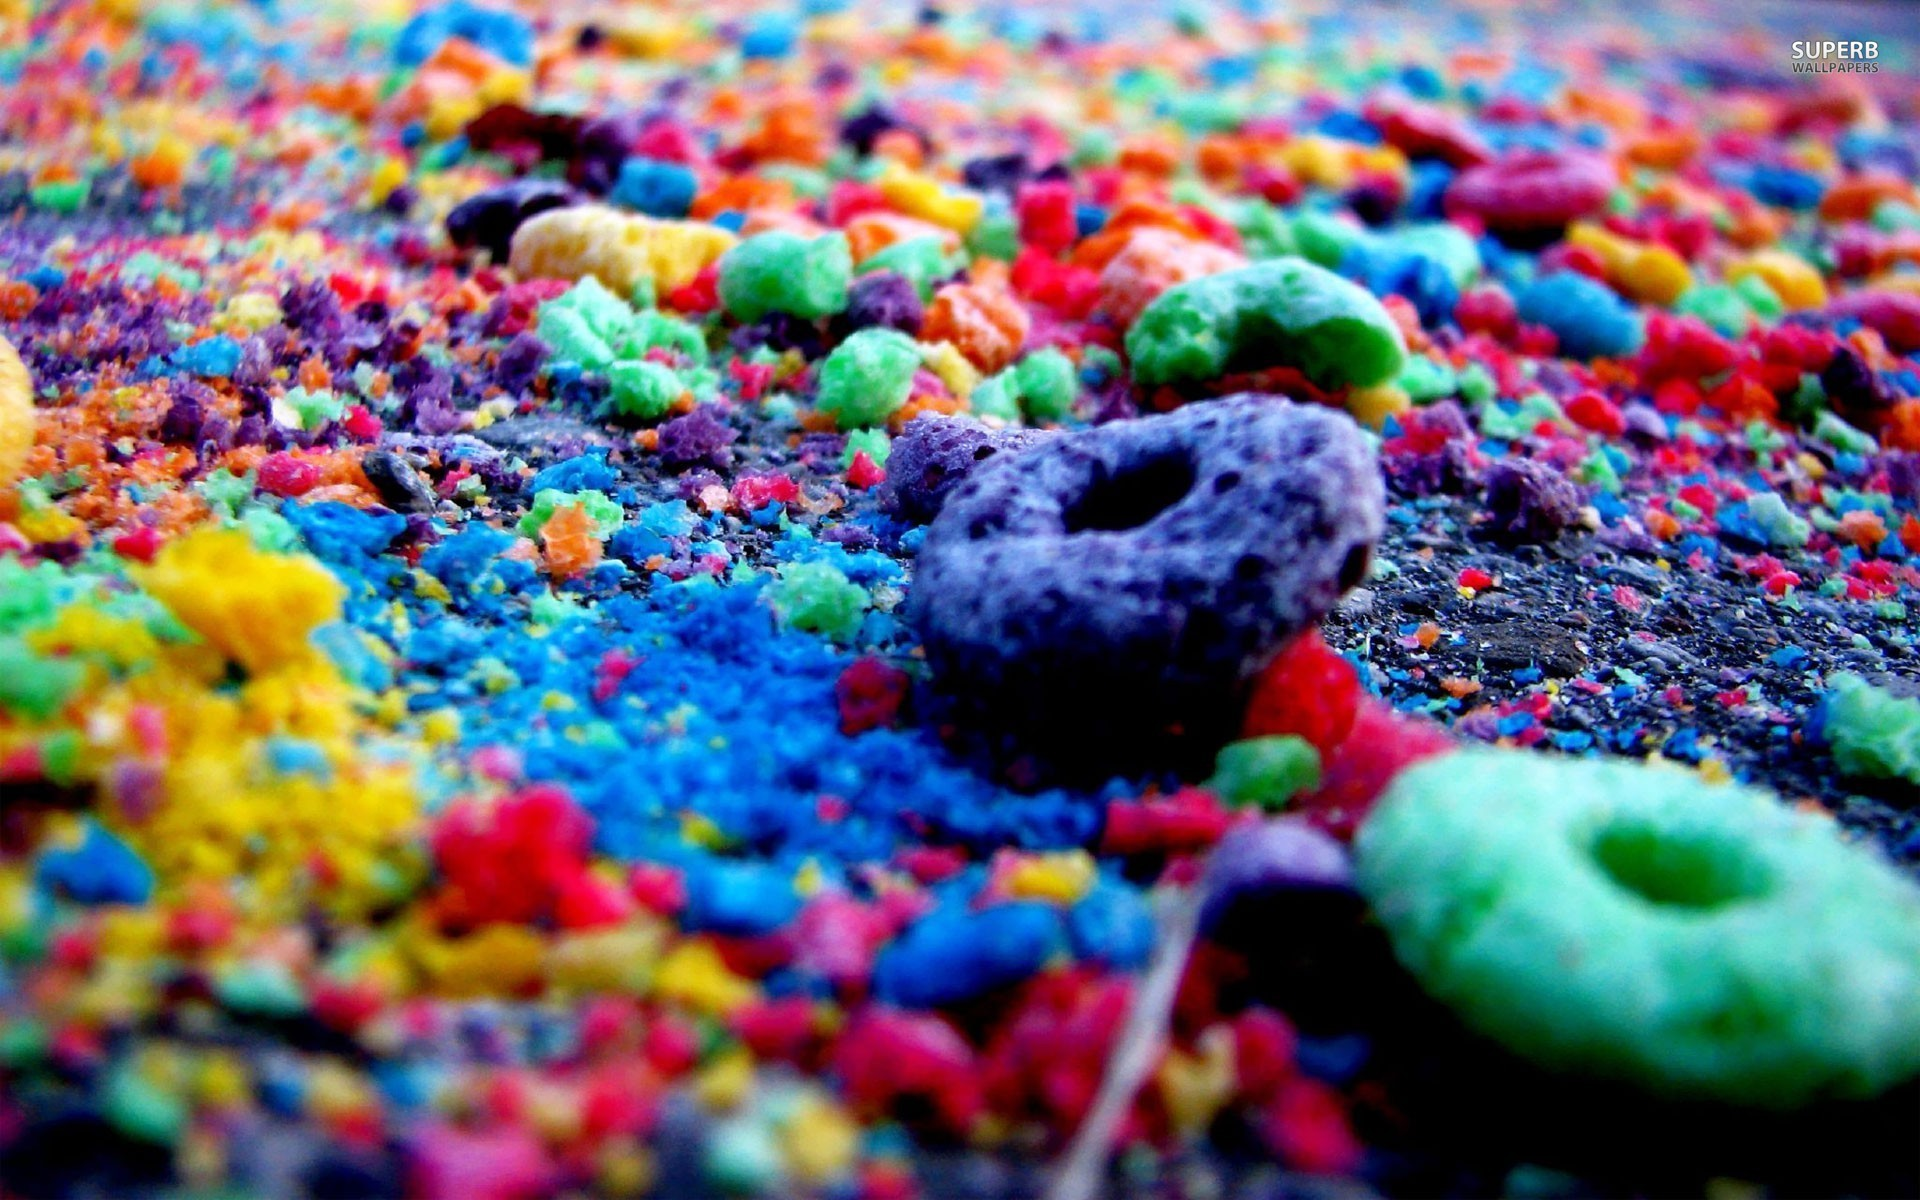 Colorful cereal wallpaper 1920x1200 jpg